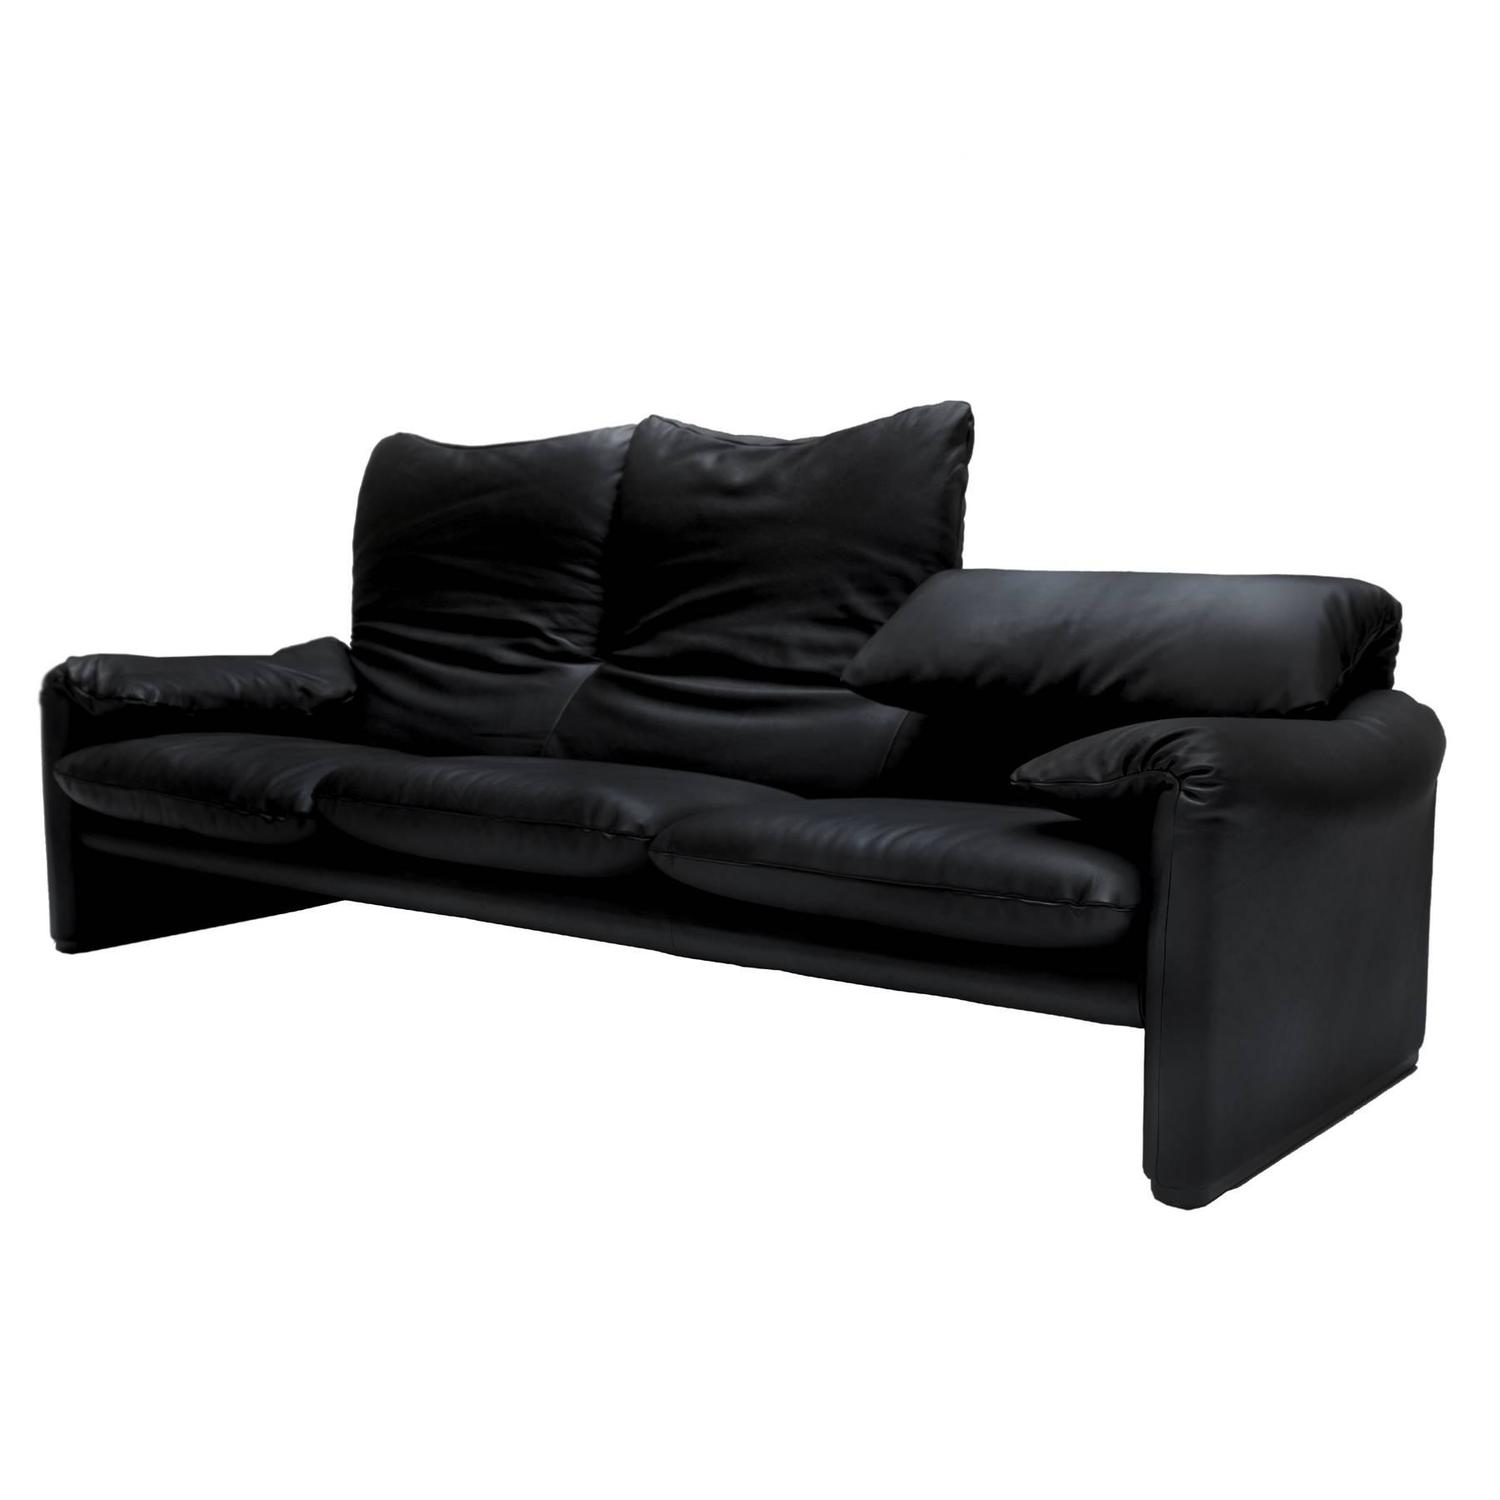 "Three Seater Black Leather Sofa ""Maralunga"" by Vico Magistretti"